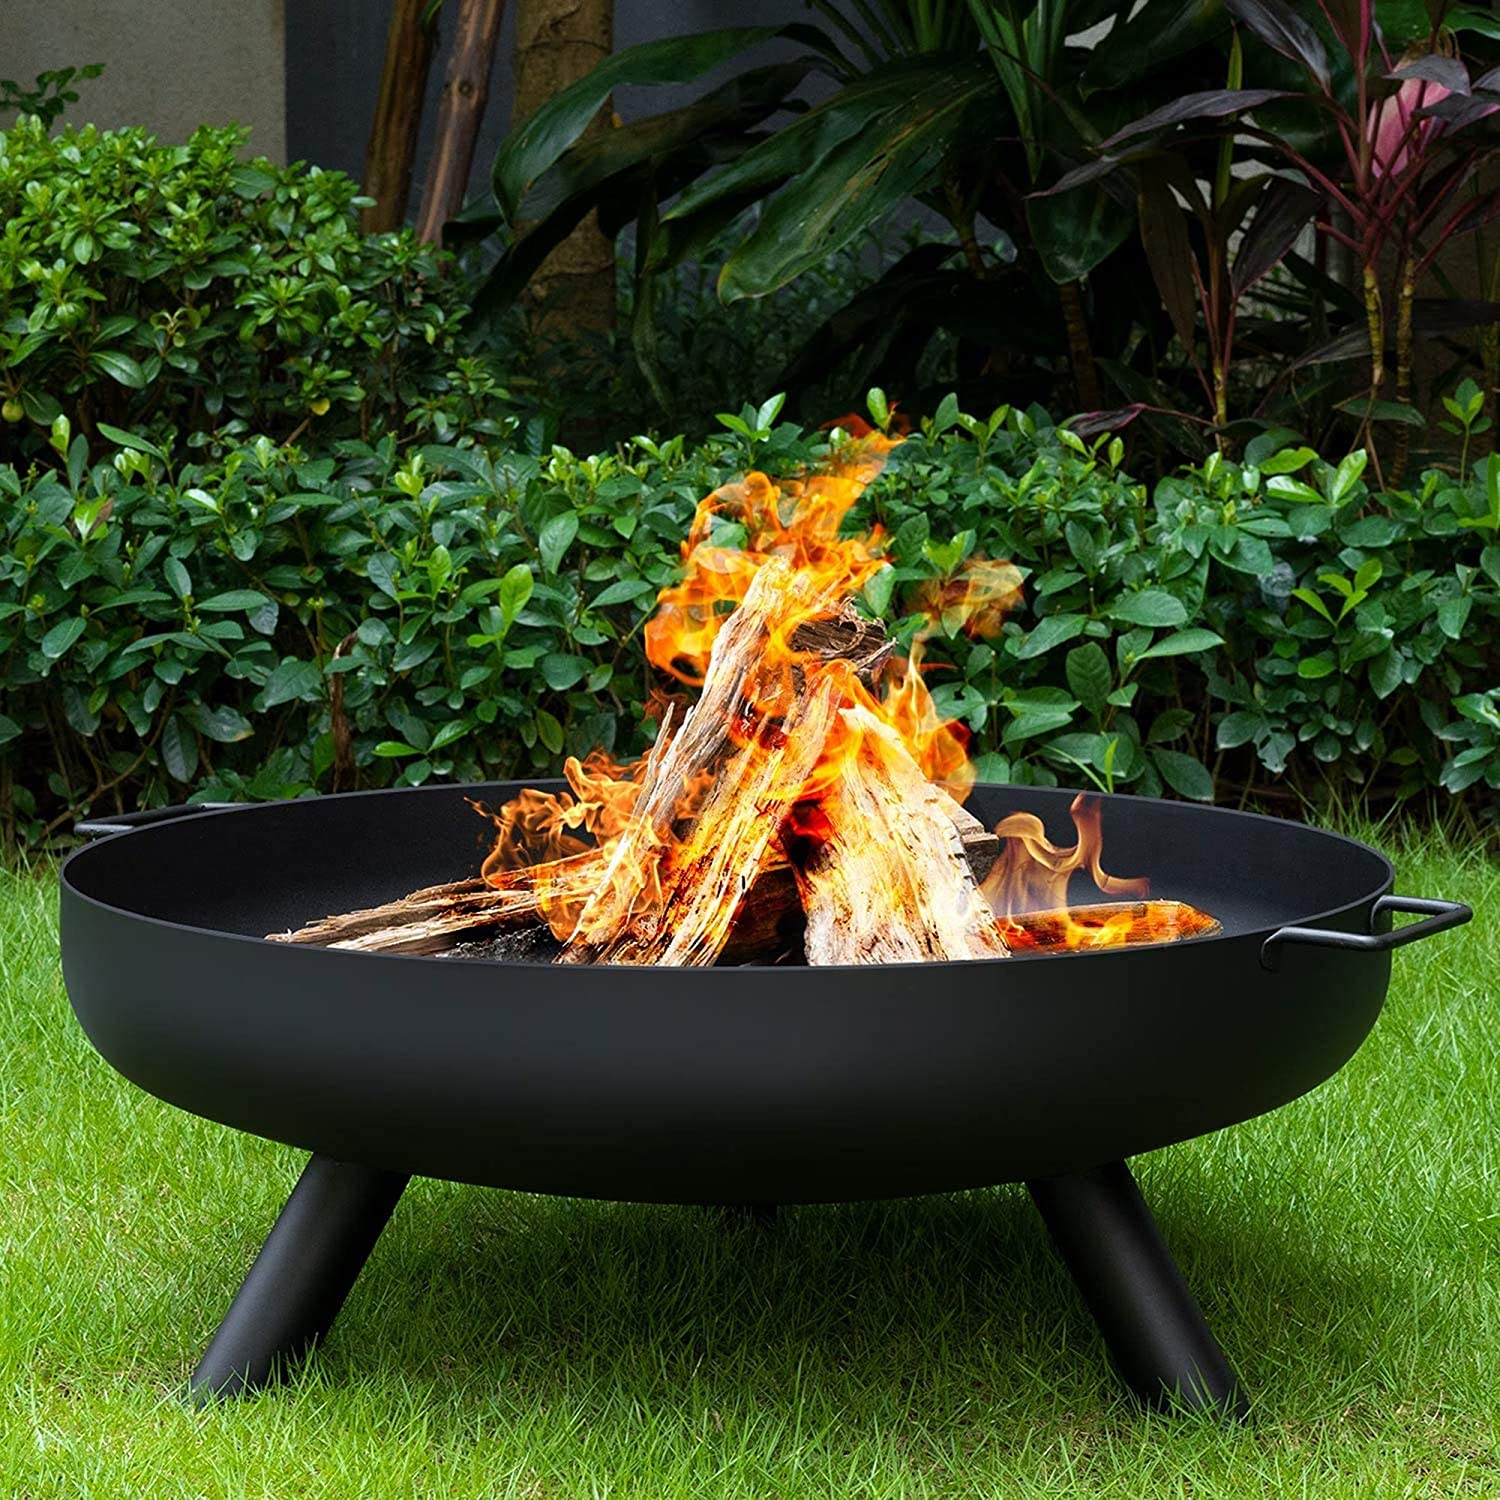 Fmxymc Outdoor Fire Bowl Wood Burning Extra Large Round Fire Pit Heavy Duty Metal Fireplace For Charcoal Burning Cast Iron Rust Proof Stove 31inch 80cm Amazon Co Uk Kitchen Home